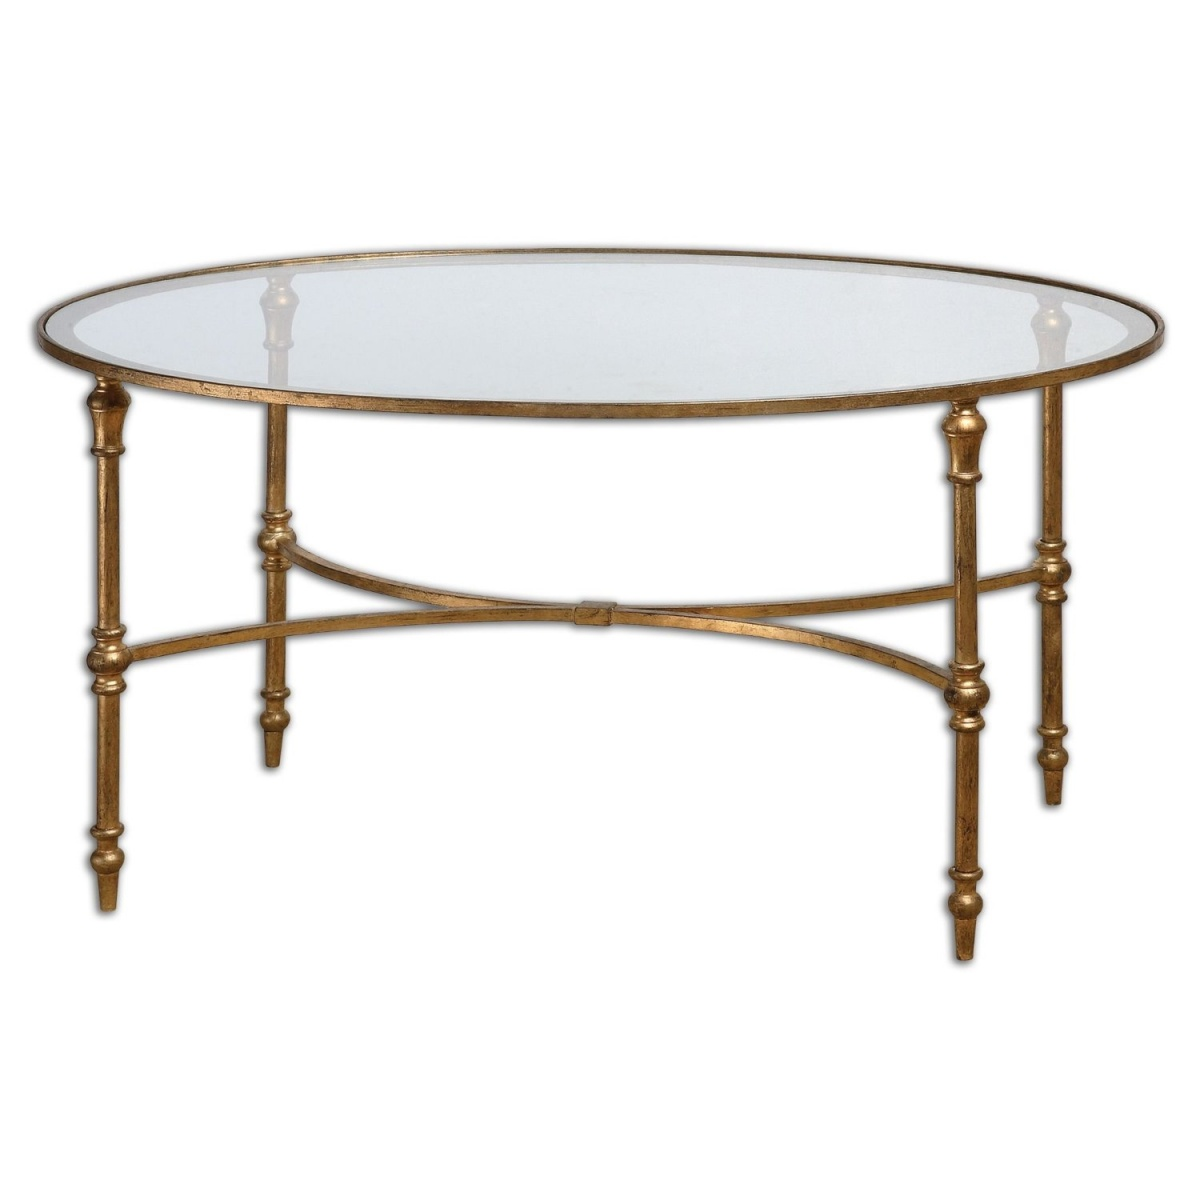 Round Glass Coffee Table With Iron Legs And Frame Is A Good Material Combination Gold Round Glass Coffee Table Round Glass And Metal Coffee Table (Image 6 of 10)